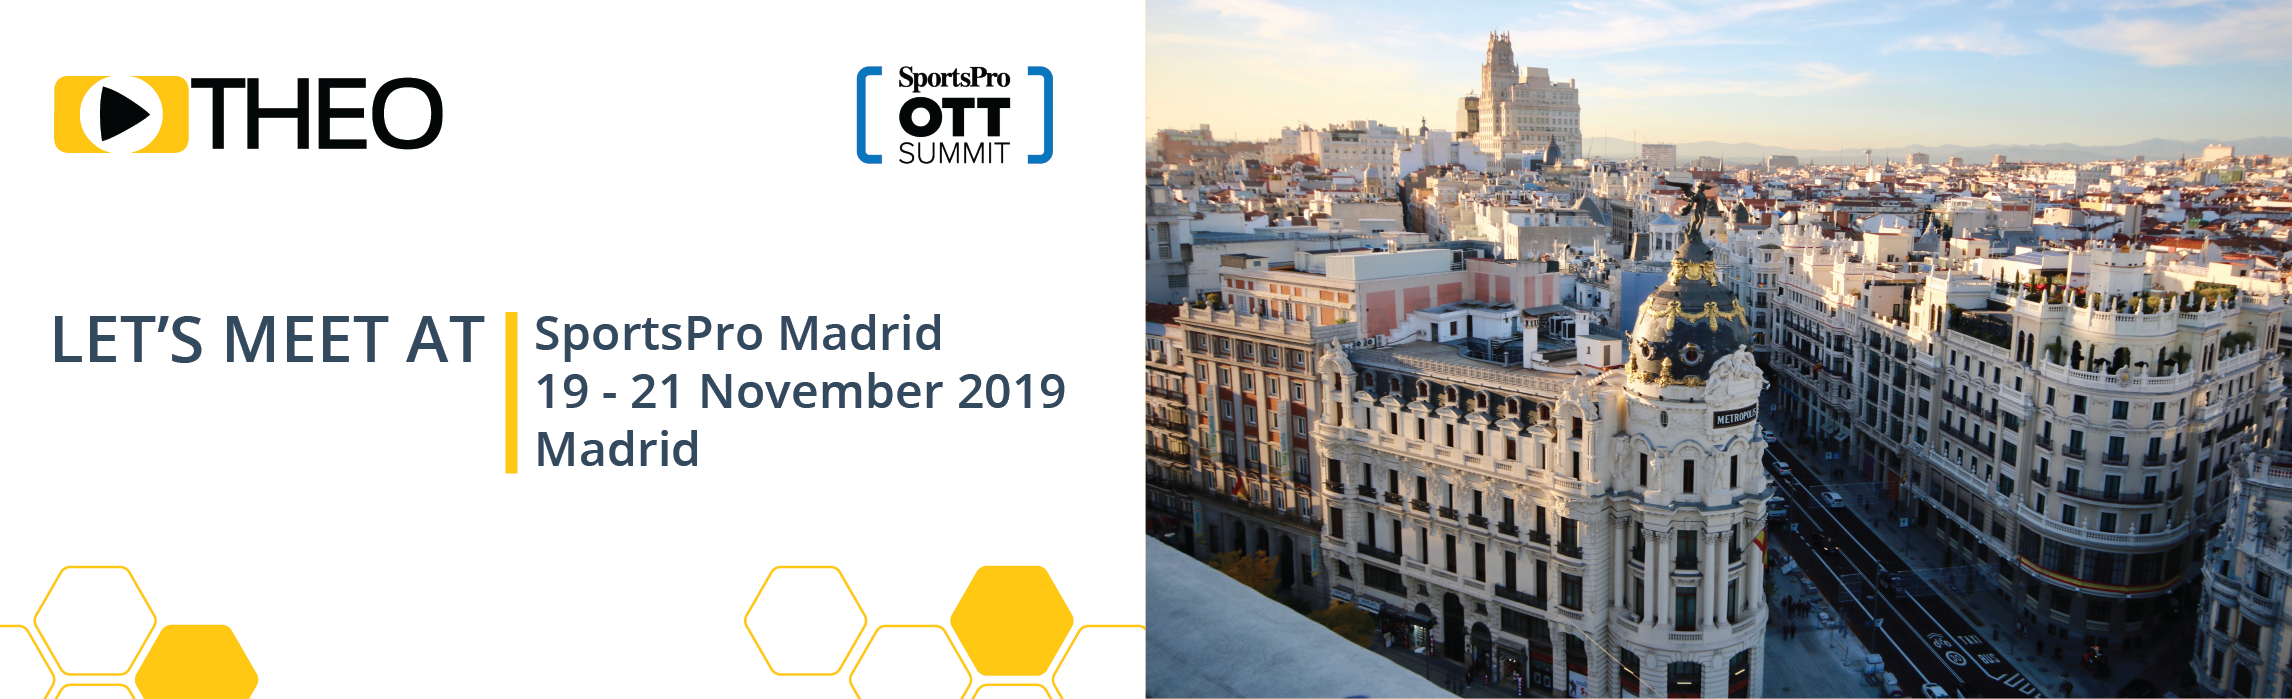 THEO Technologies is attending SportsPro Madrid